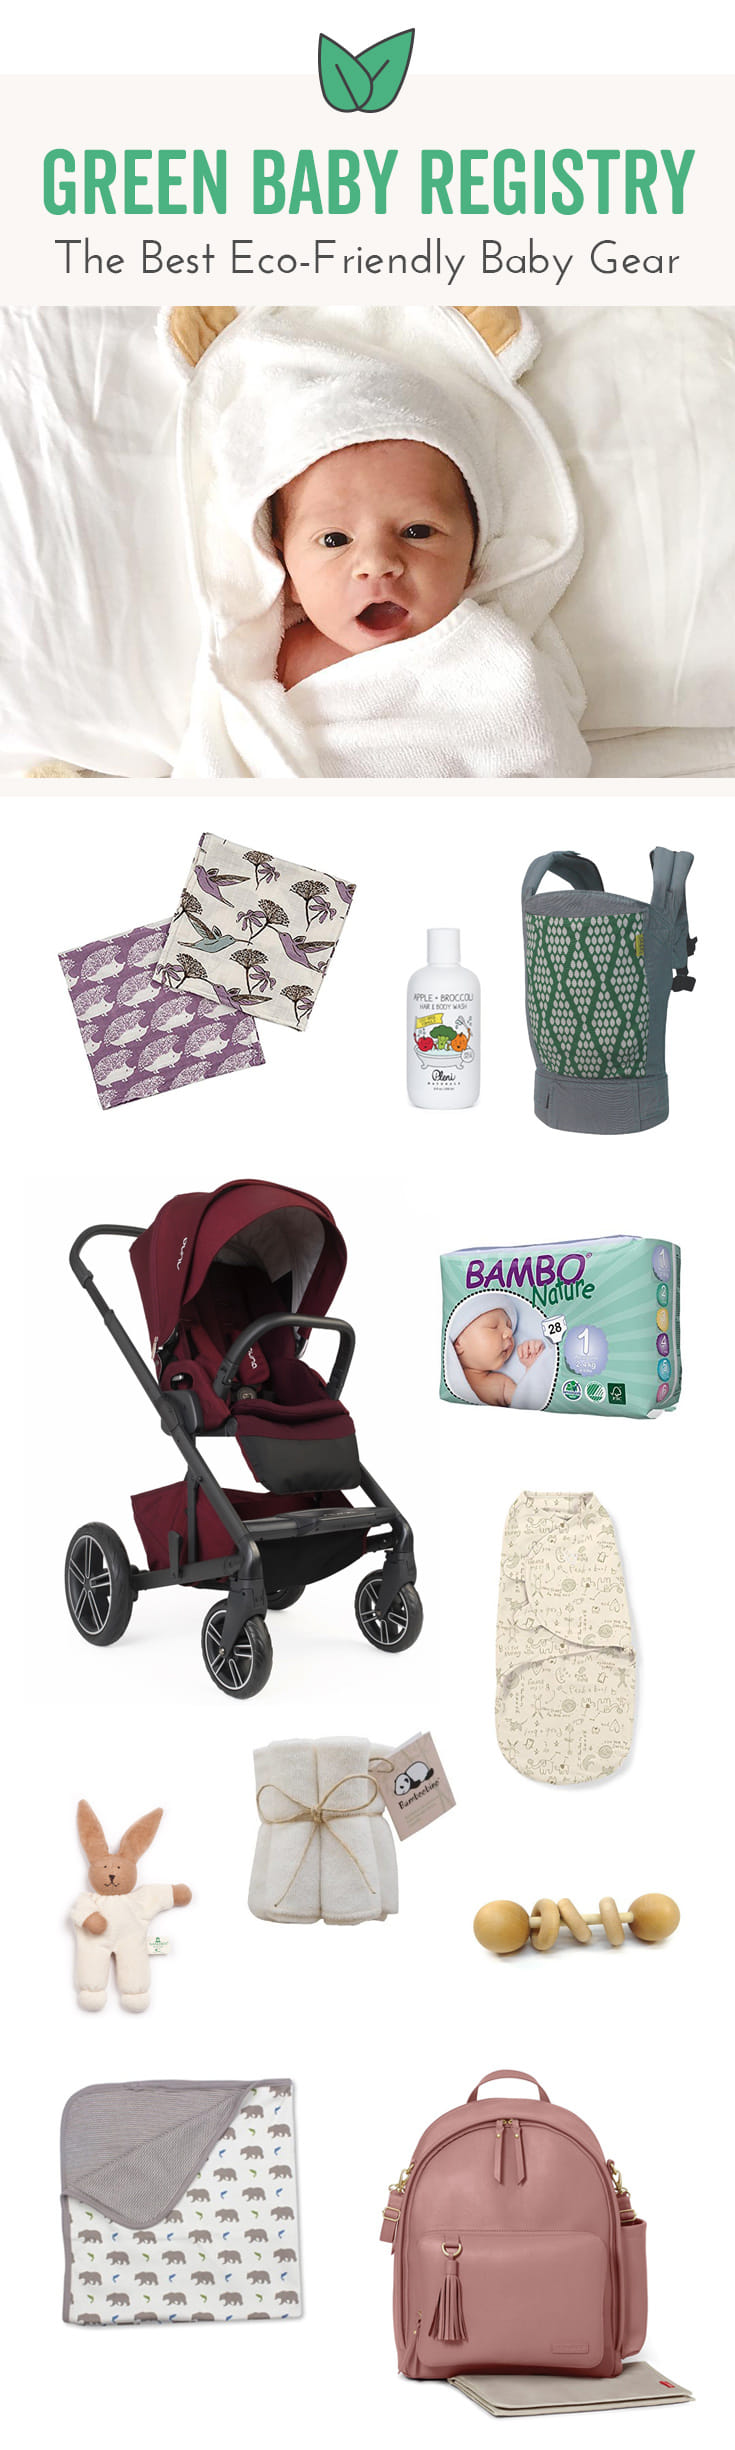 Want baby gear that's organic and chemical-free? From toys to bottles, here are your best sustainable choices for baby.